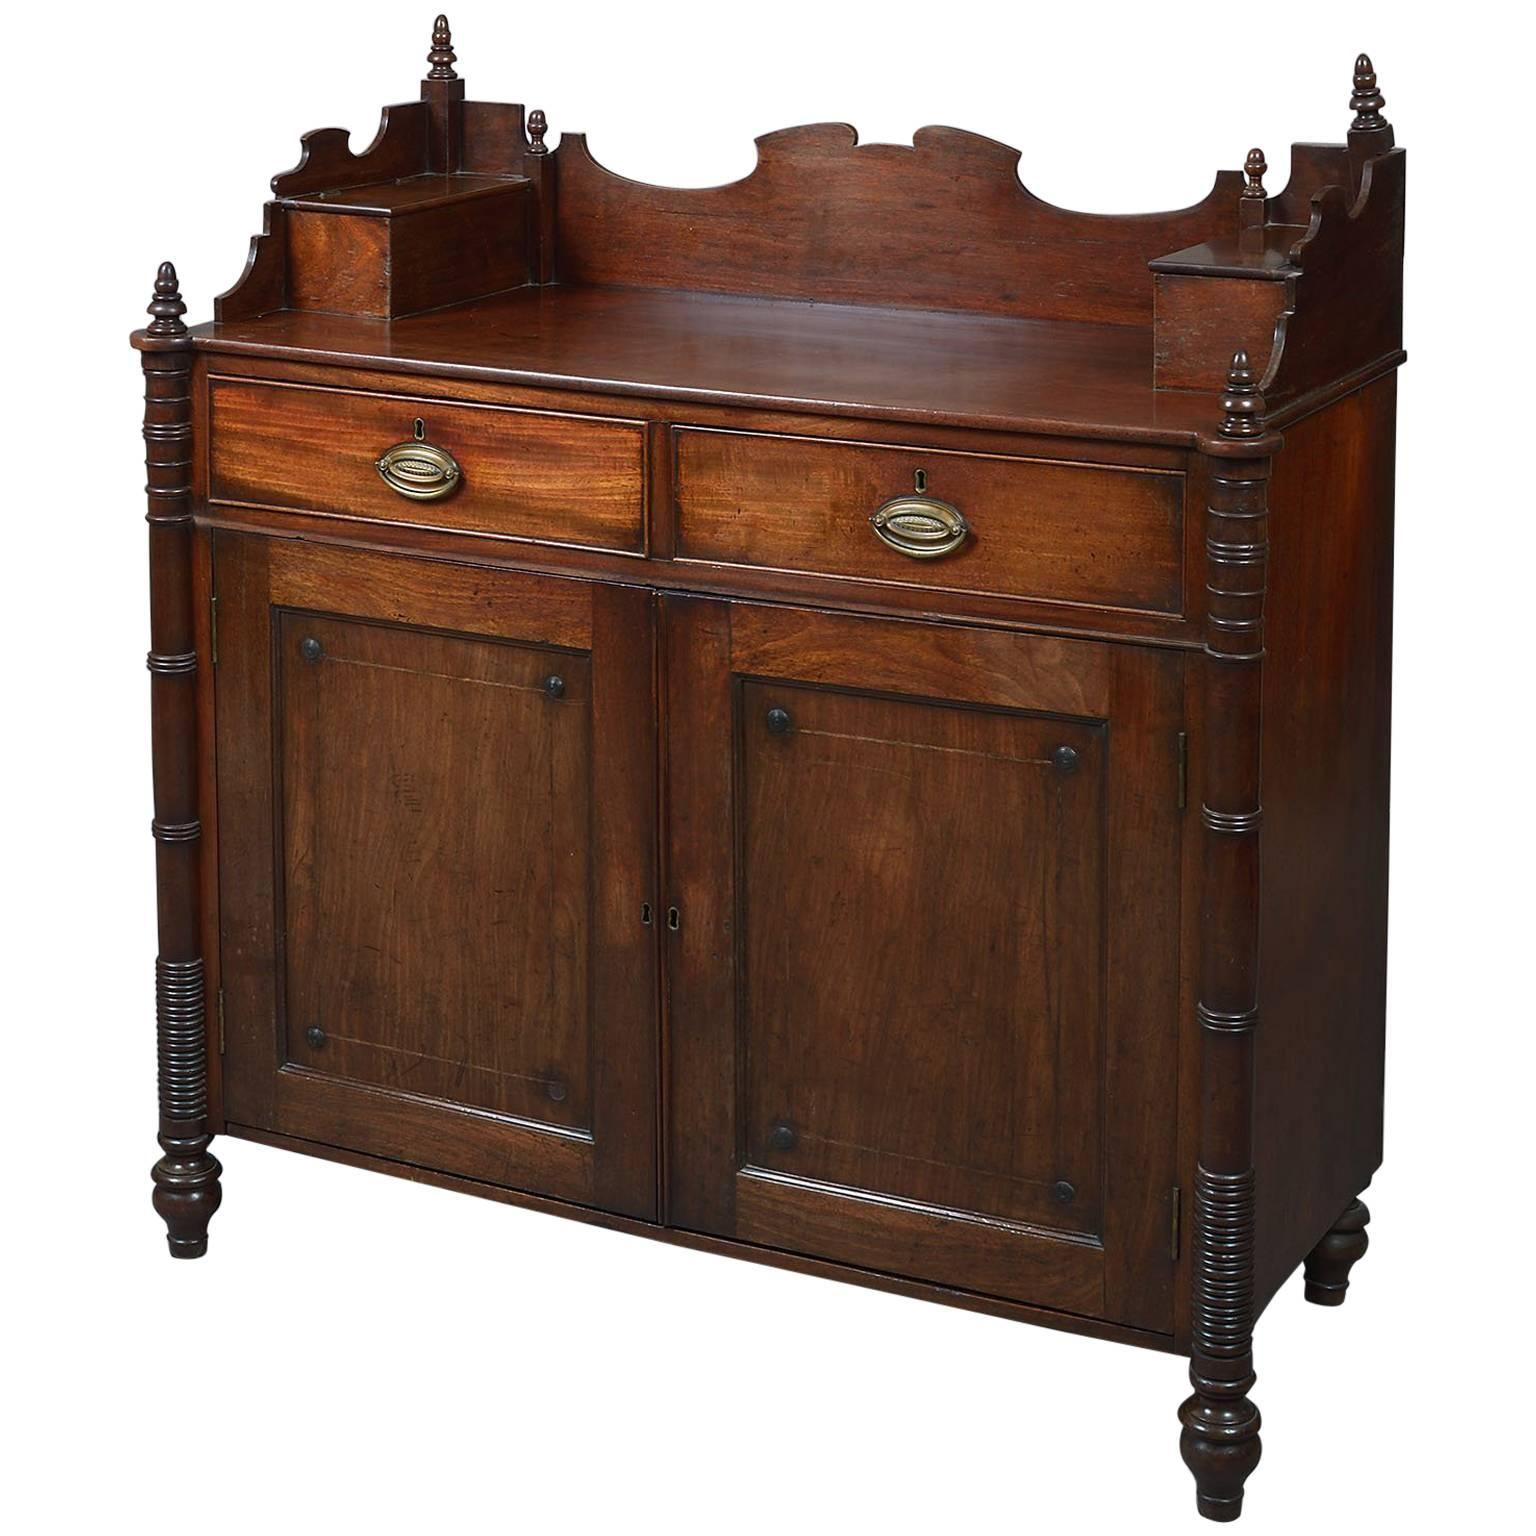 Rare American Federal Period Mahogany Side Cabinet Or Server